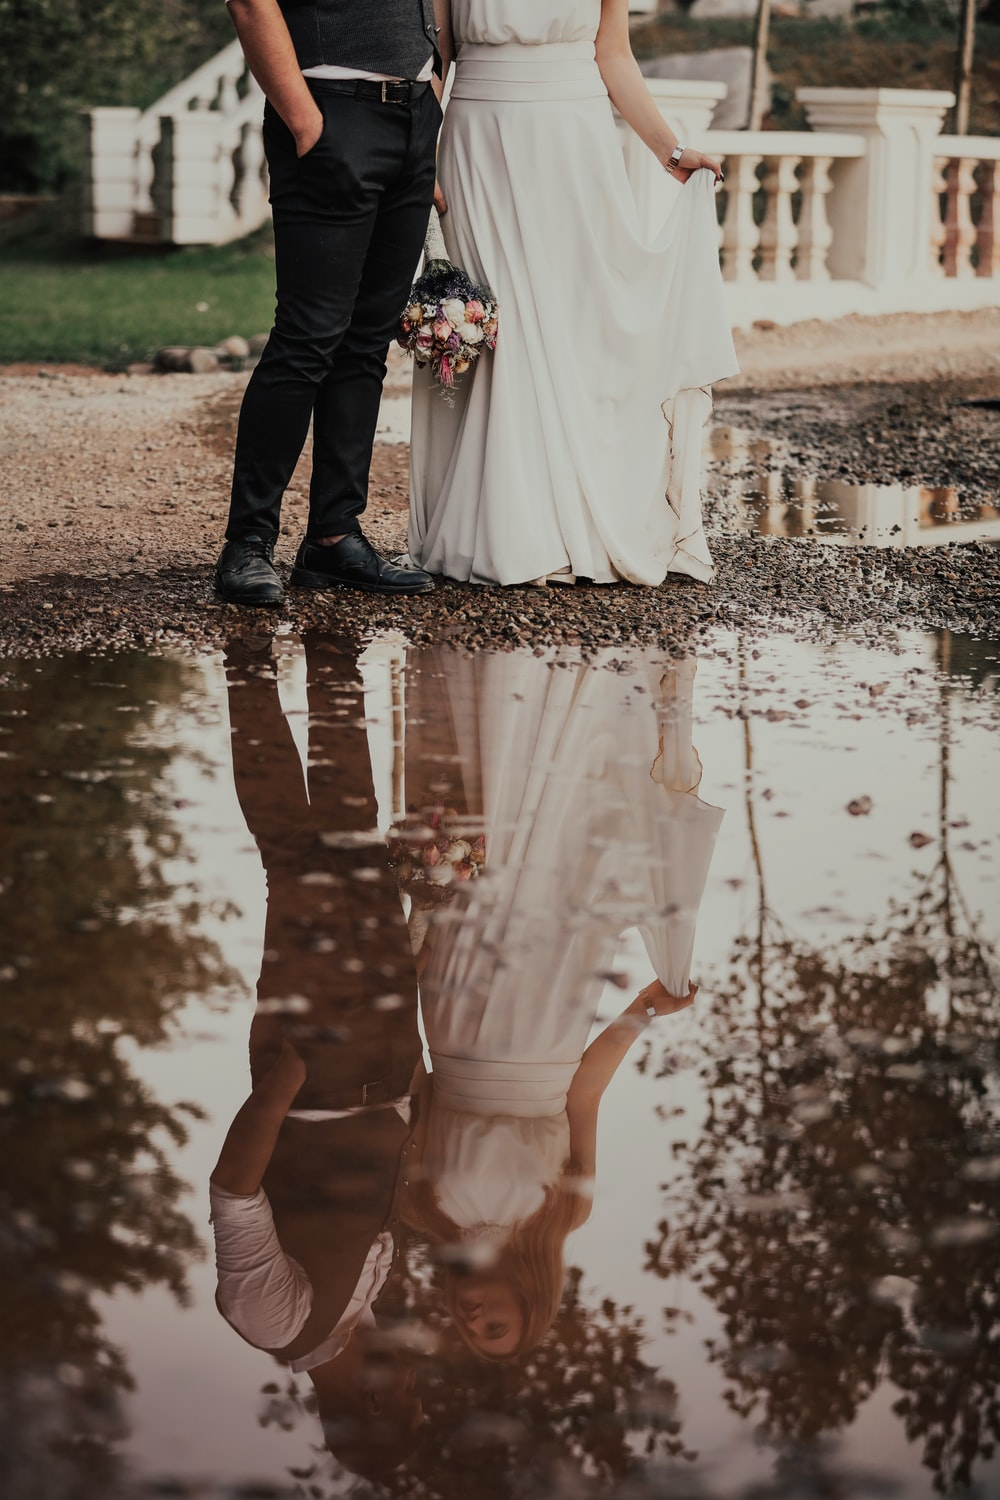 woman in white wedding dress holding hands with man in black suit